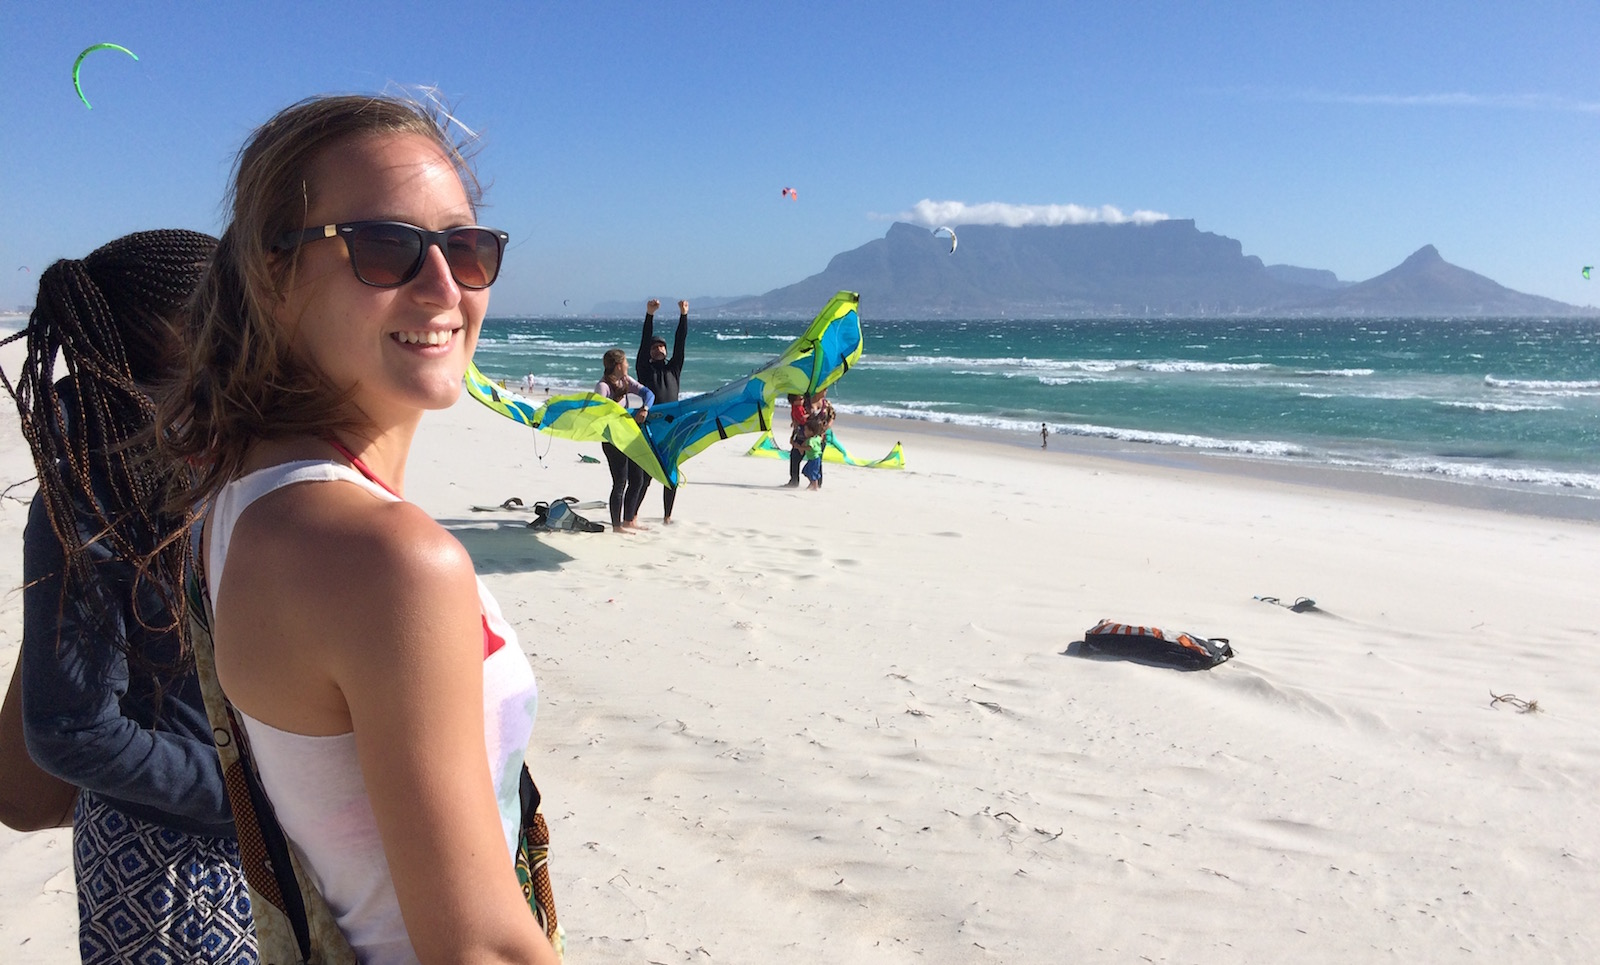 Can't get much better than that. Our local kite beach with Table Mountain in the background.